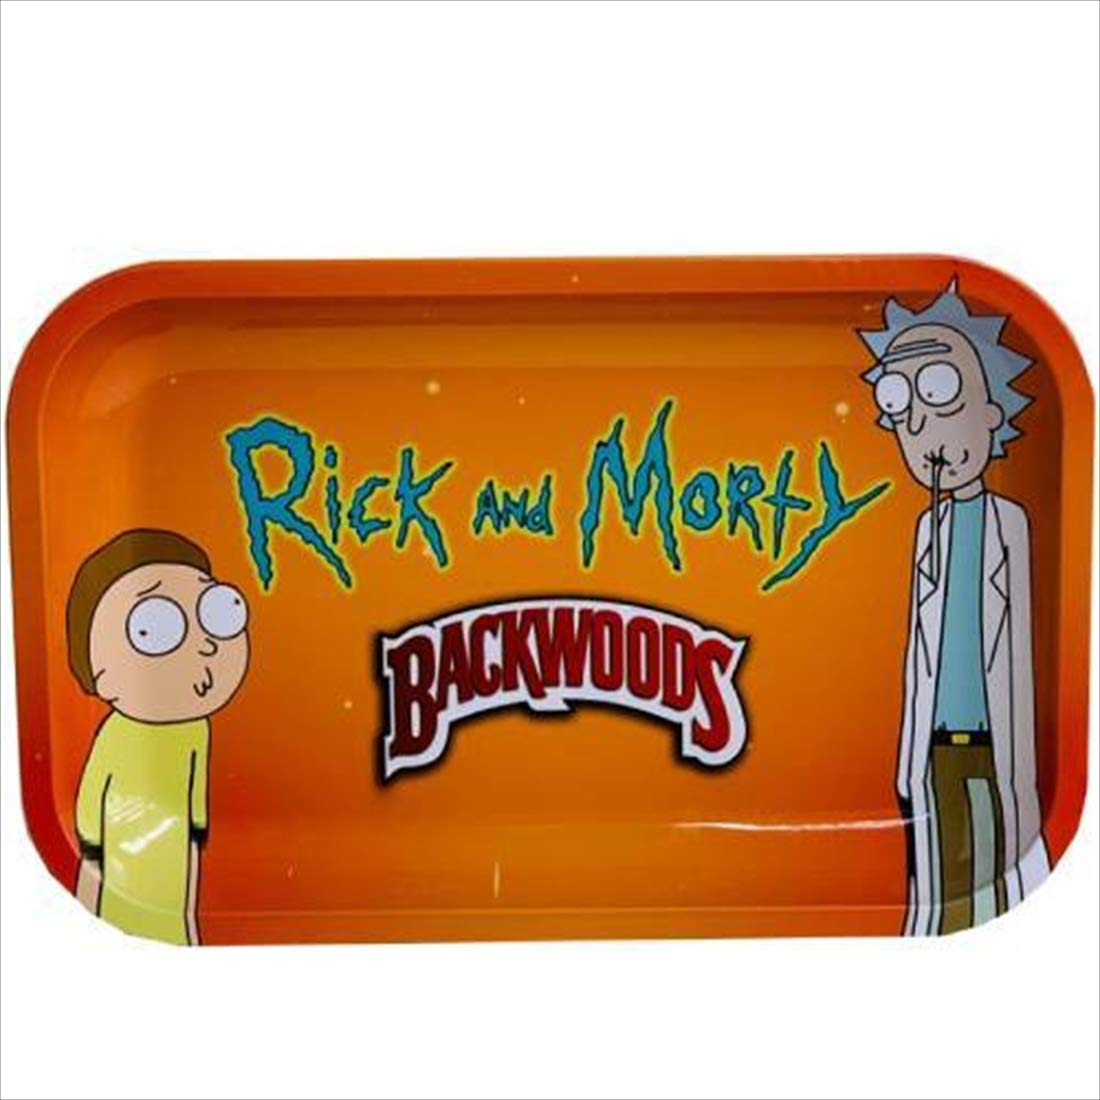 Rolling Tray for Weed in Durable Metal with Vintage Cartoon Design by Simply Works Imports